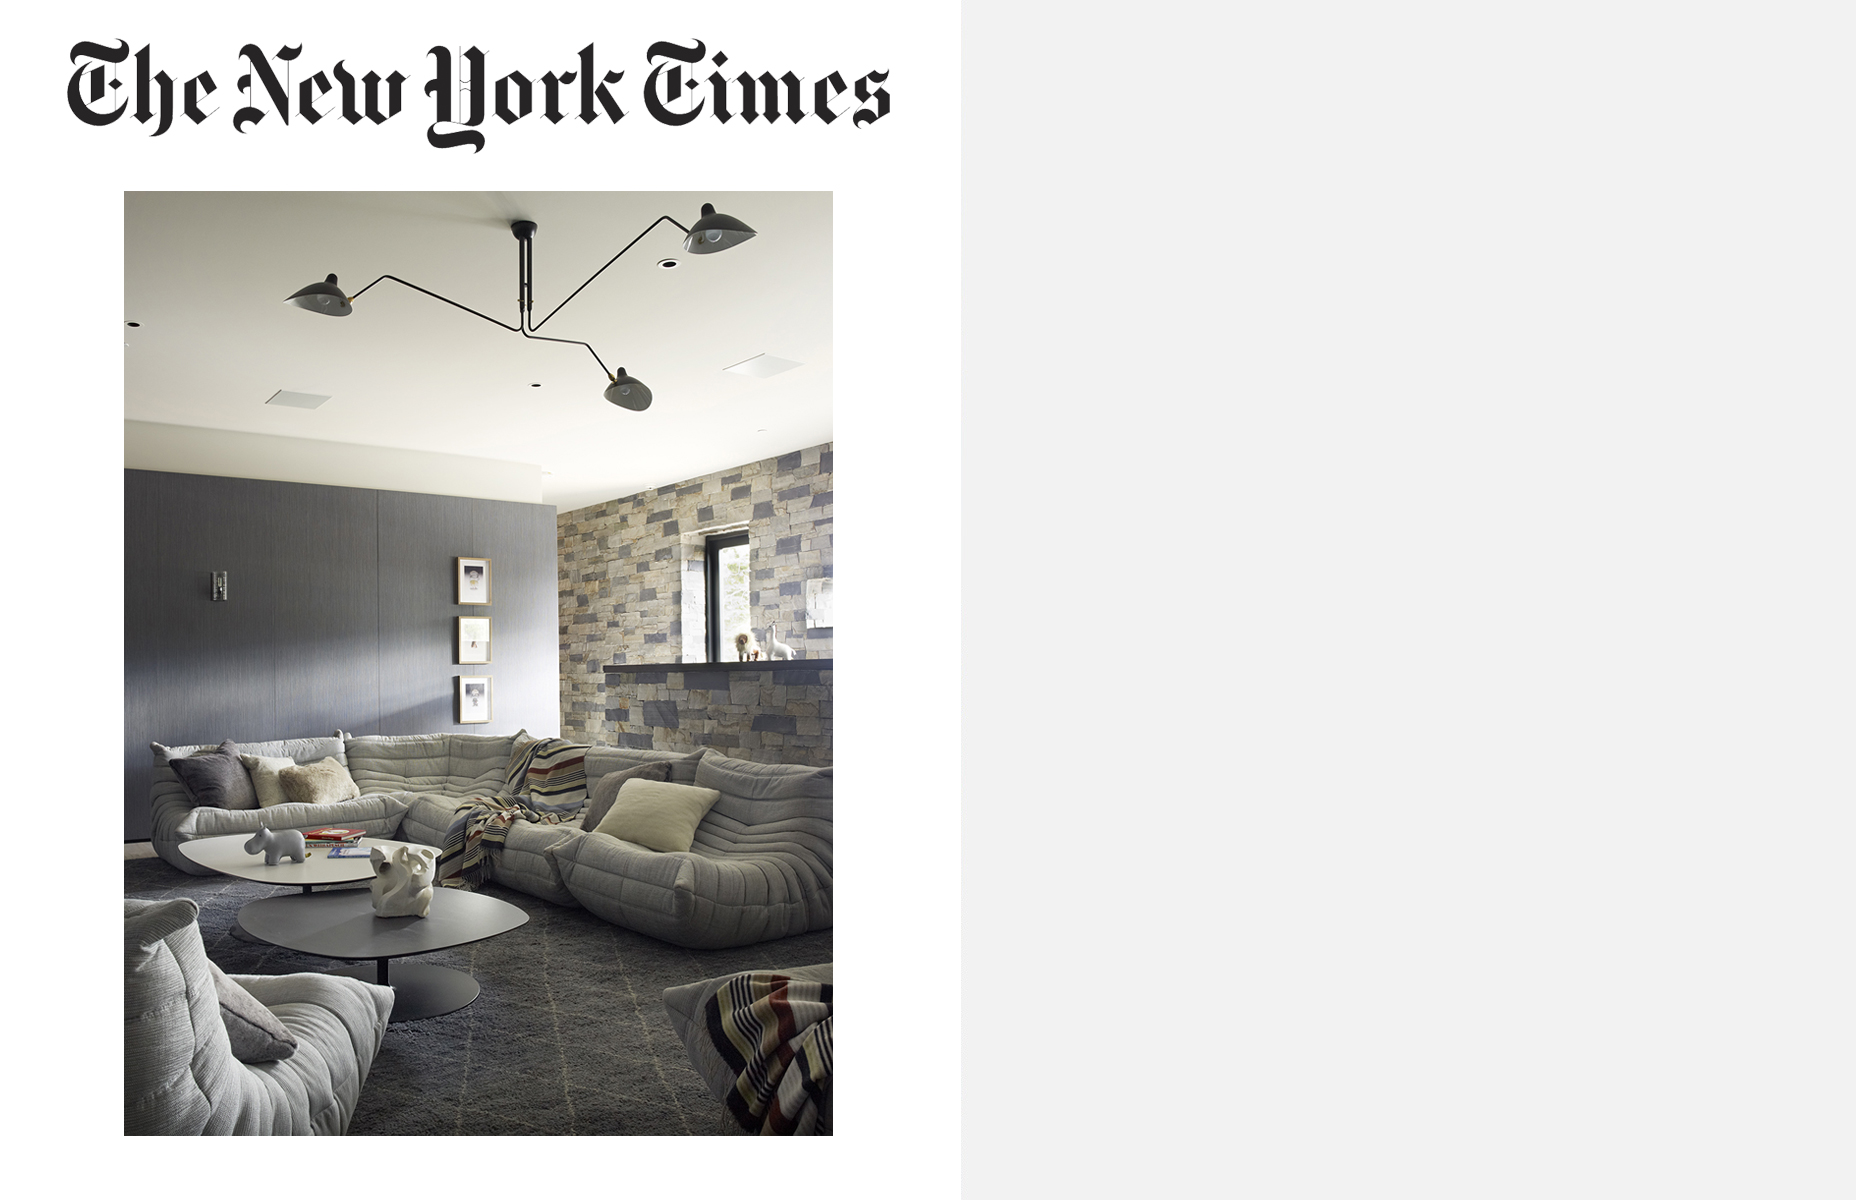 19-08-nytimes-cover.jpg